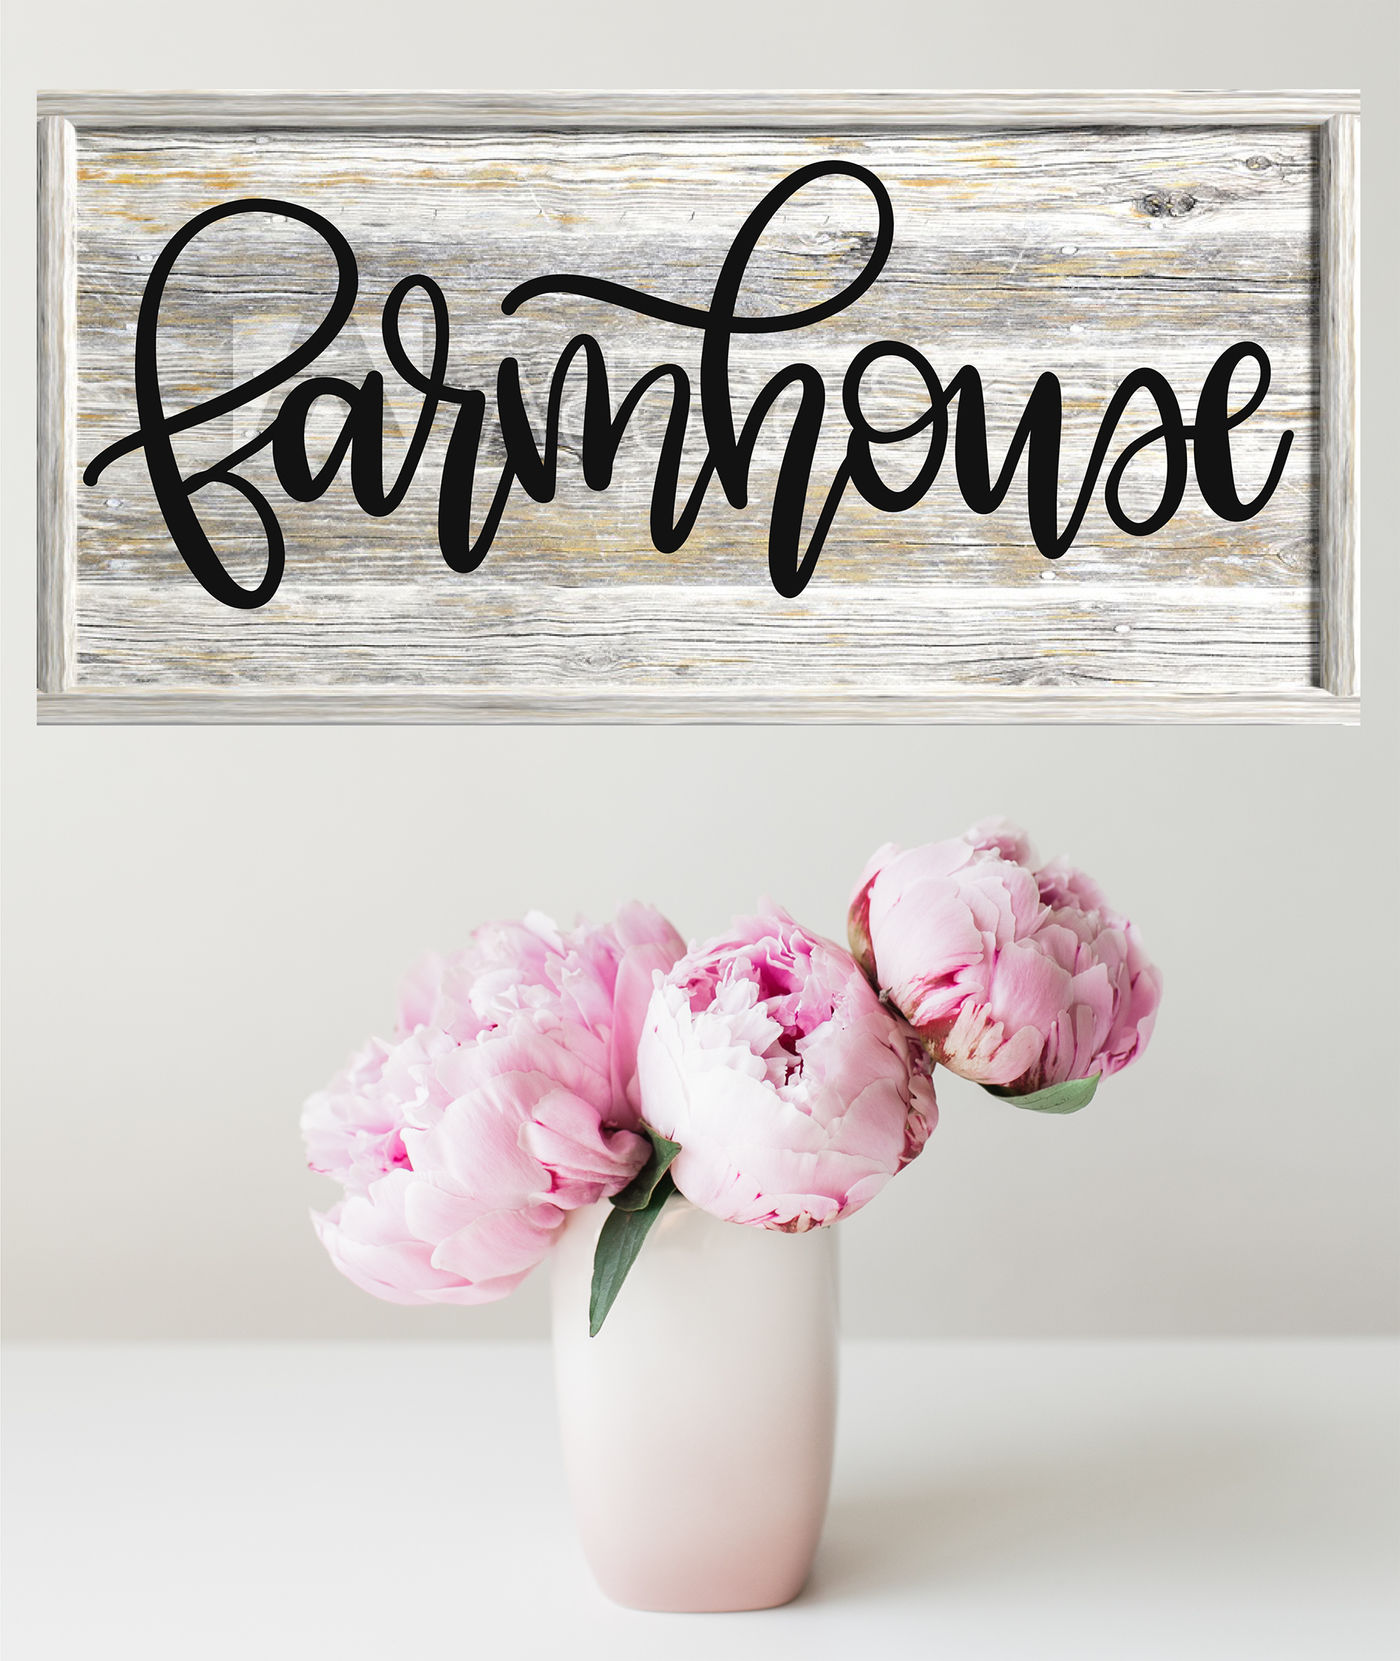 Farmhouse Hand Lettered Svg By Rosemary Designs Thehungryjpeg Com